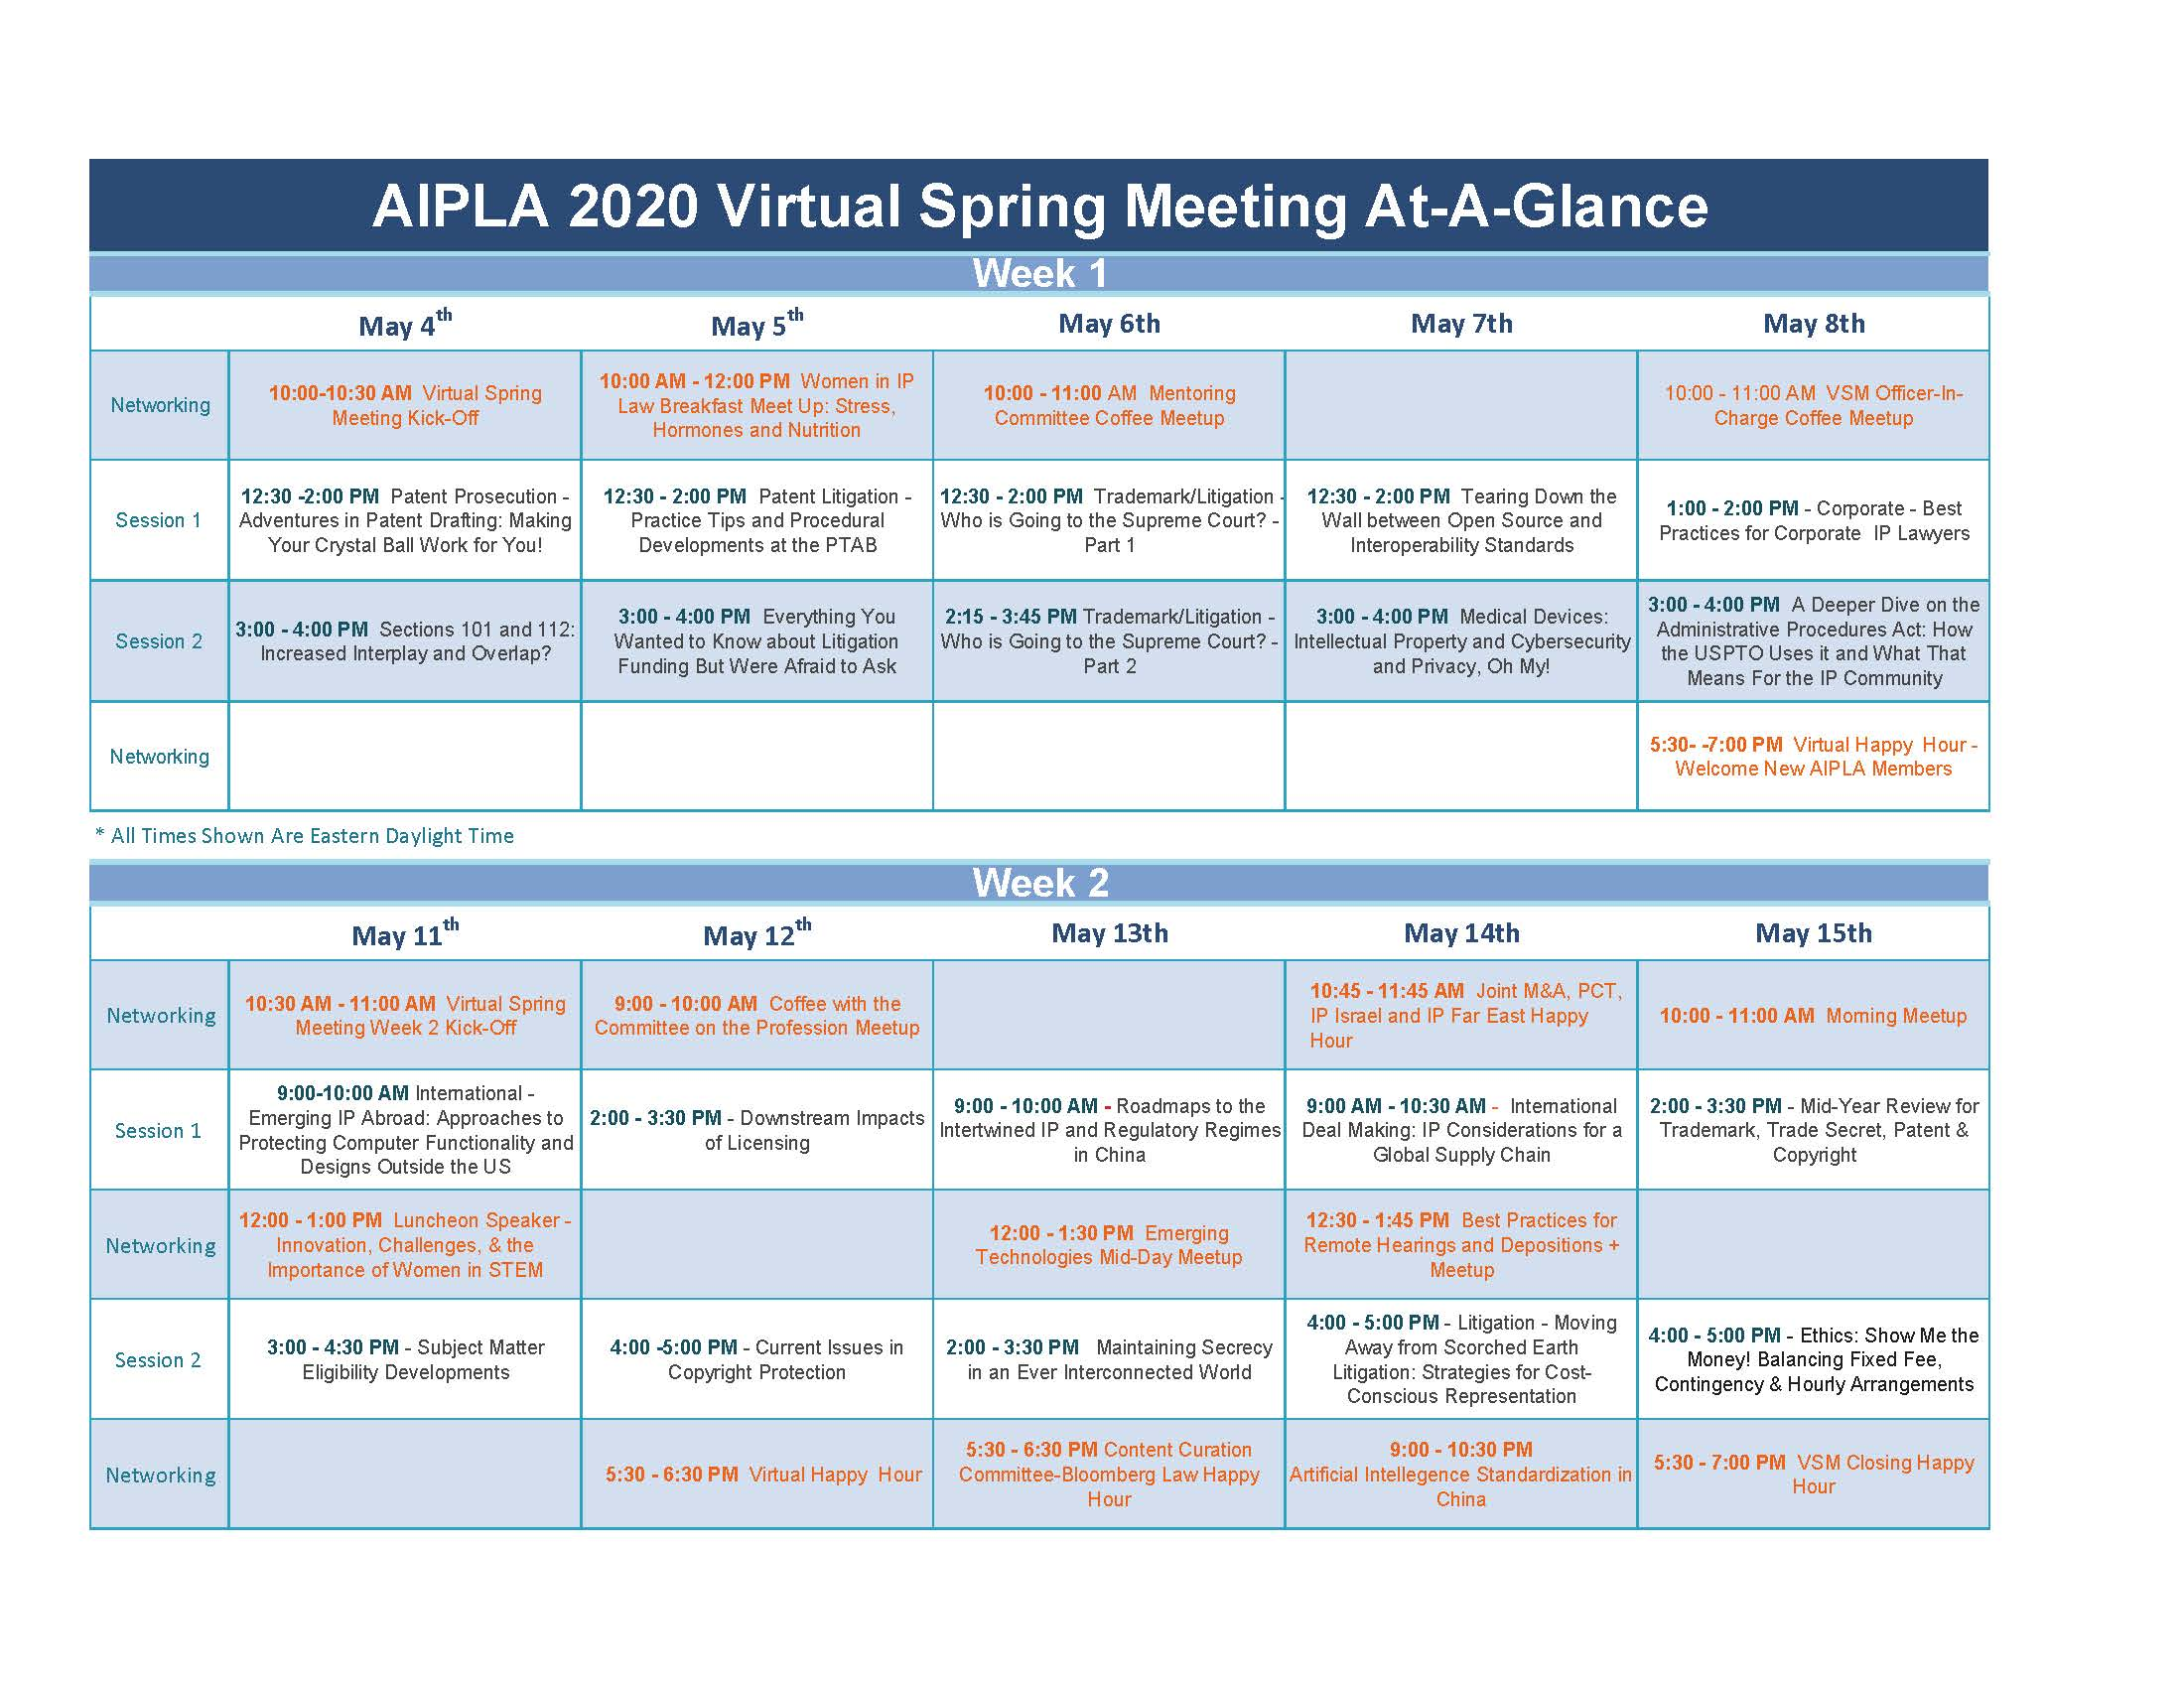 Virtual Spring Meeting At a Glance